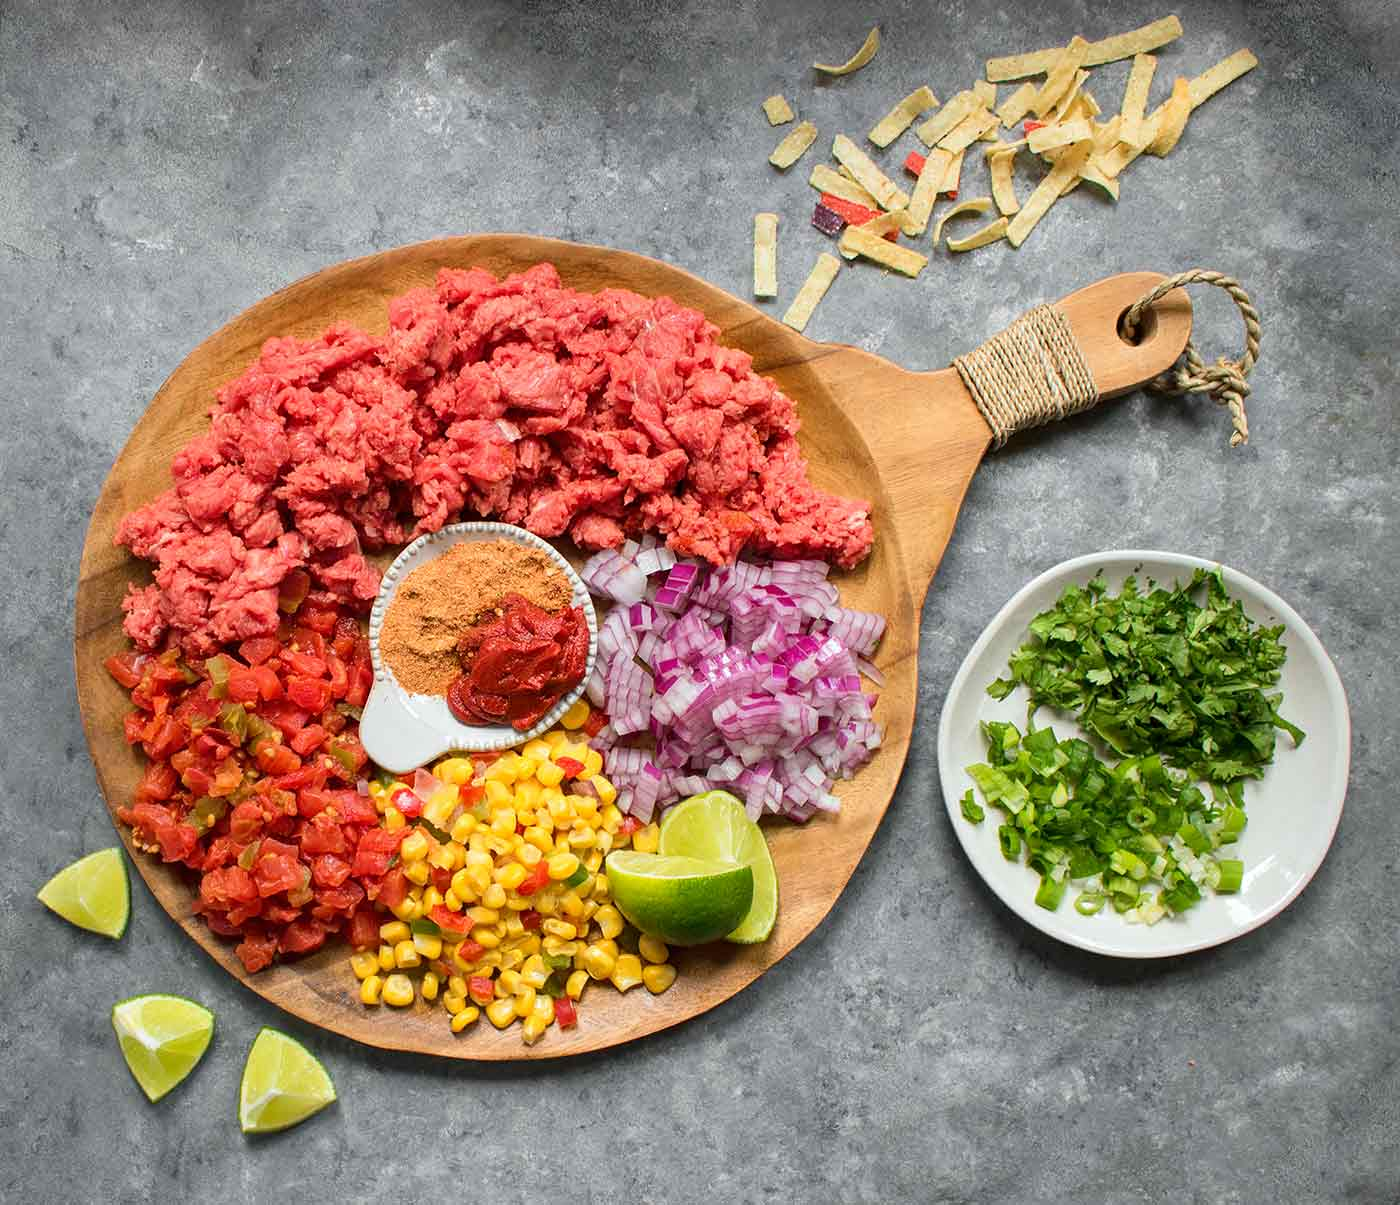 The ingredients for Taco Soup spread out on a serving board.